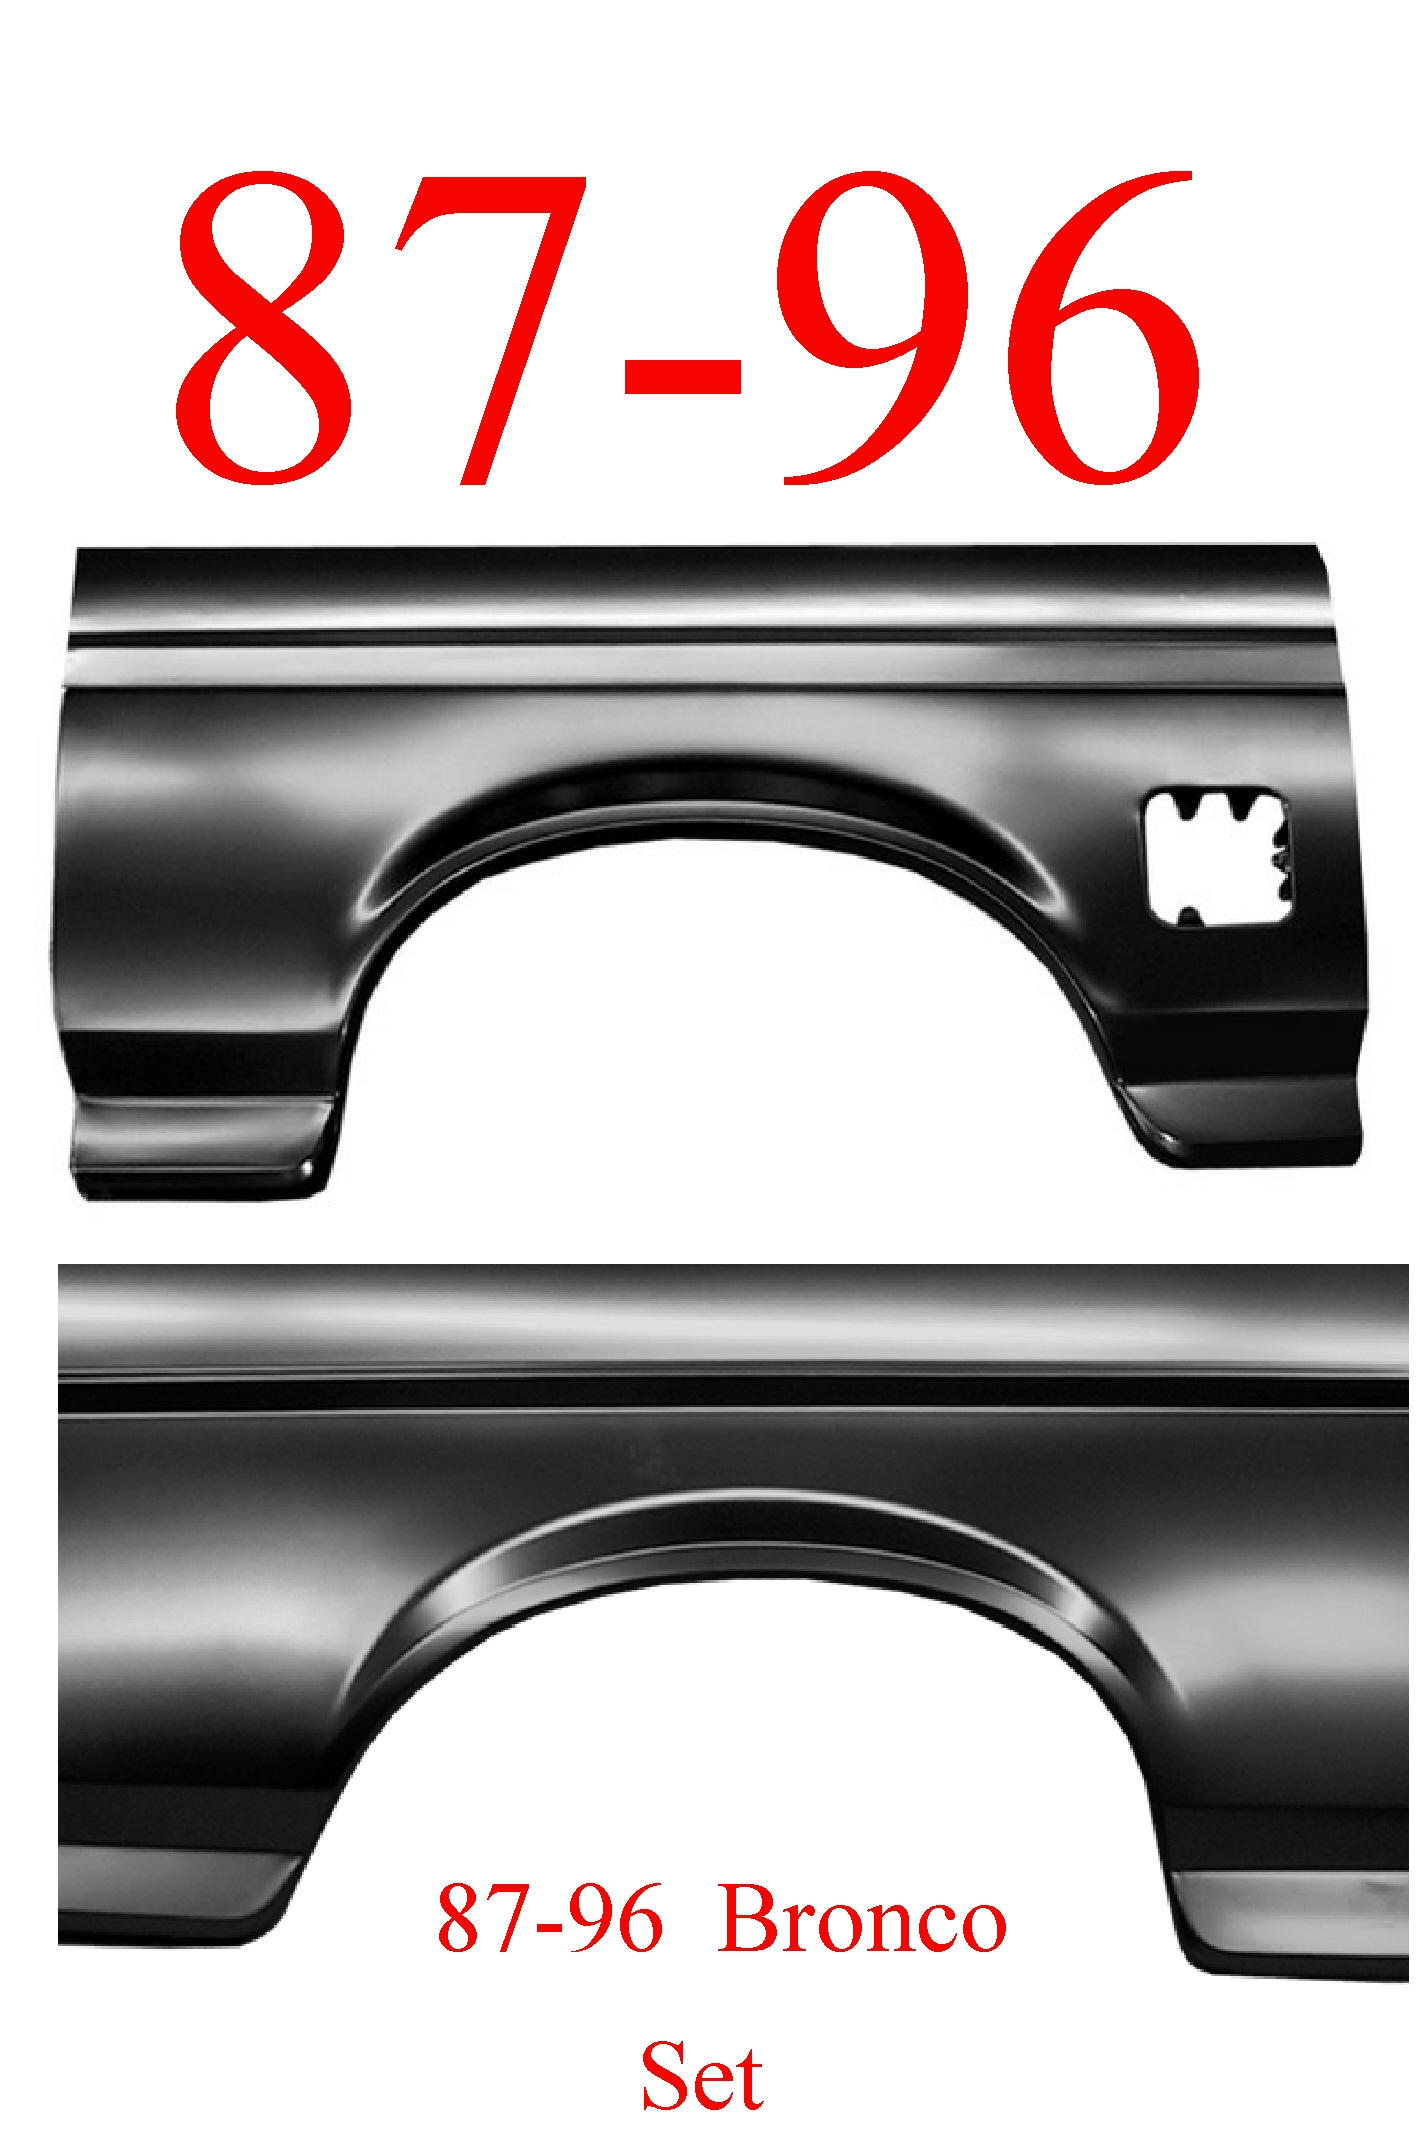 87-96 Bronco Full Rear Arch Panel Set